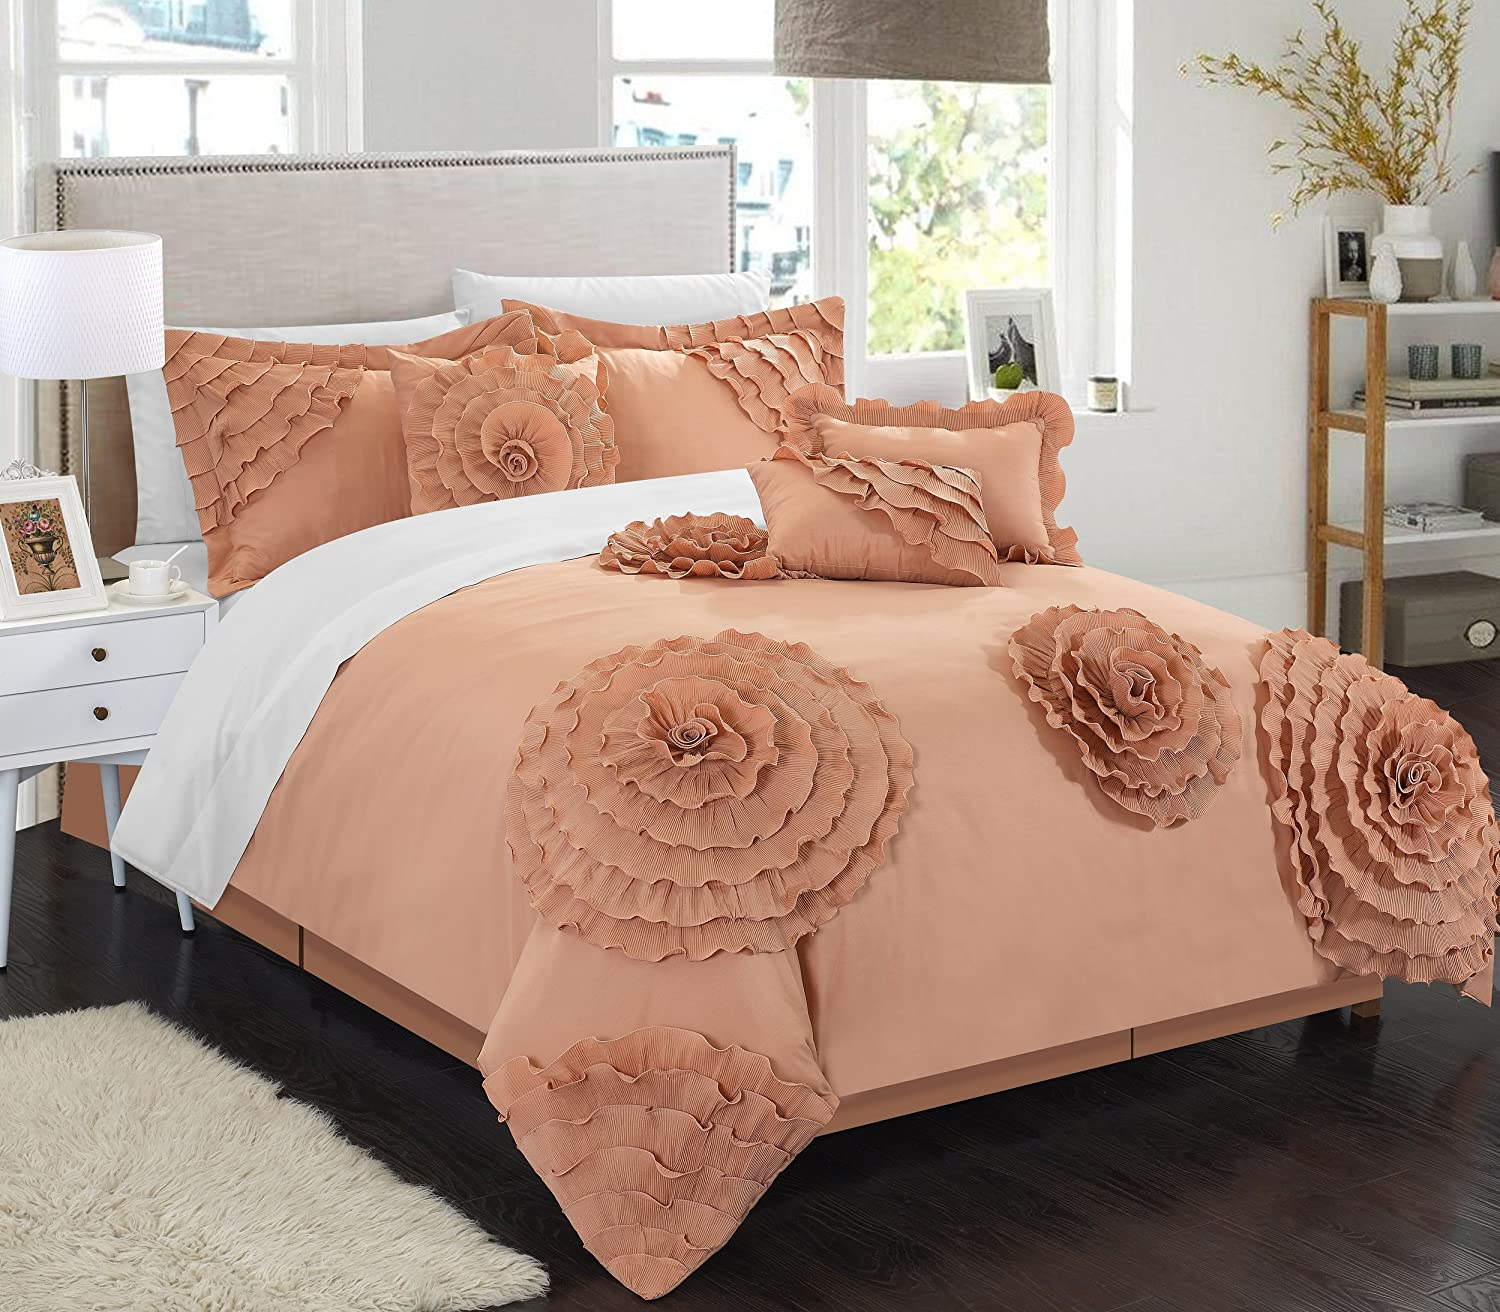 Chic Home 7 Piece Belinda Oversize Filled Floral and Rose Pleated Etched Applique Comforter Set, Queen, Peach